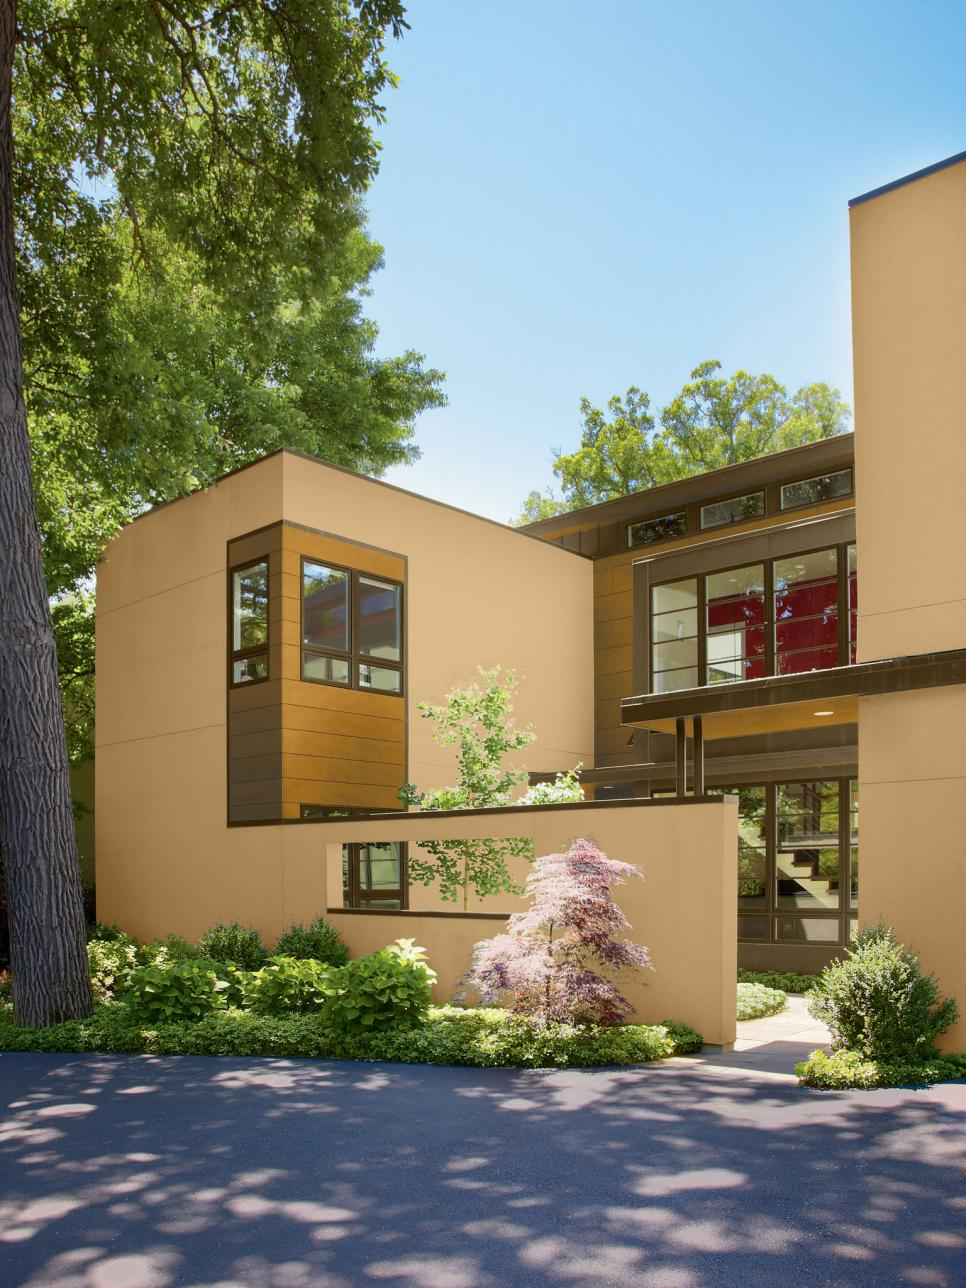 30 Modern Exterior Paint Colors For Houses - Stylendesigns on Modern House Painting  id=34795